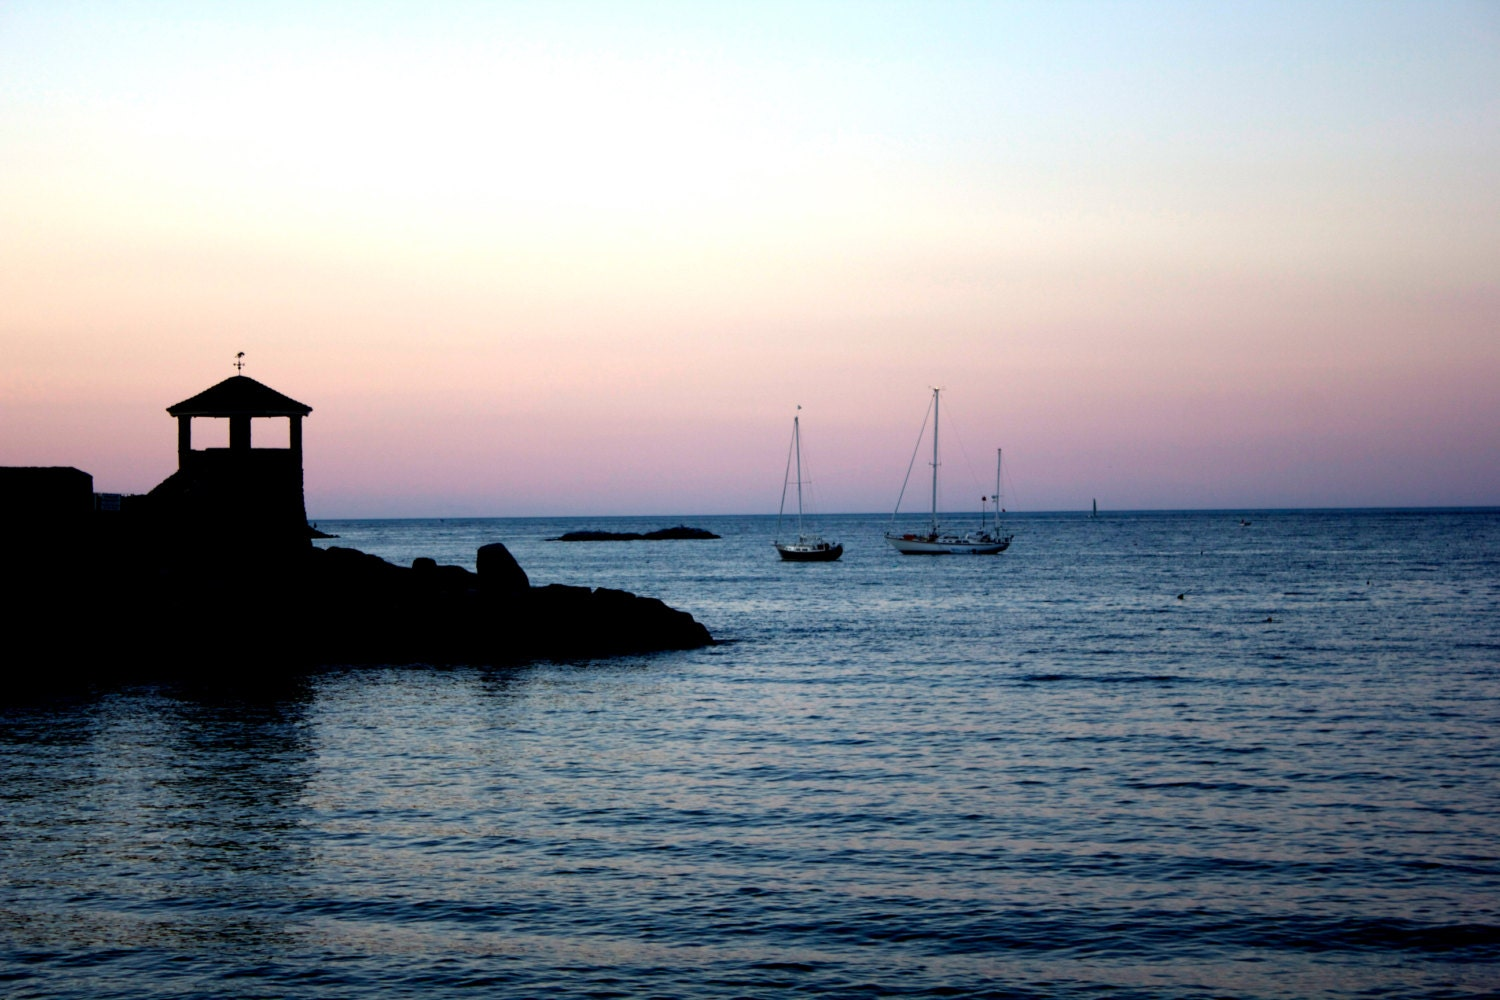 Photo titled, Twilight Tower, taken in Rockport, Massachusetts, USA  May 2011